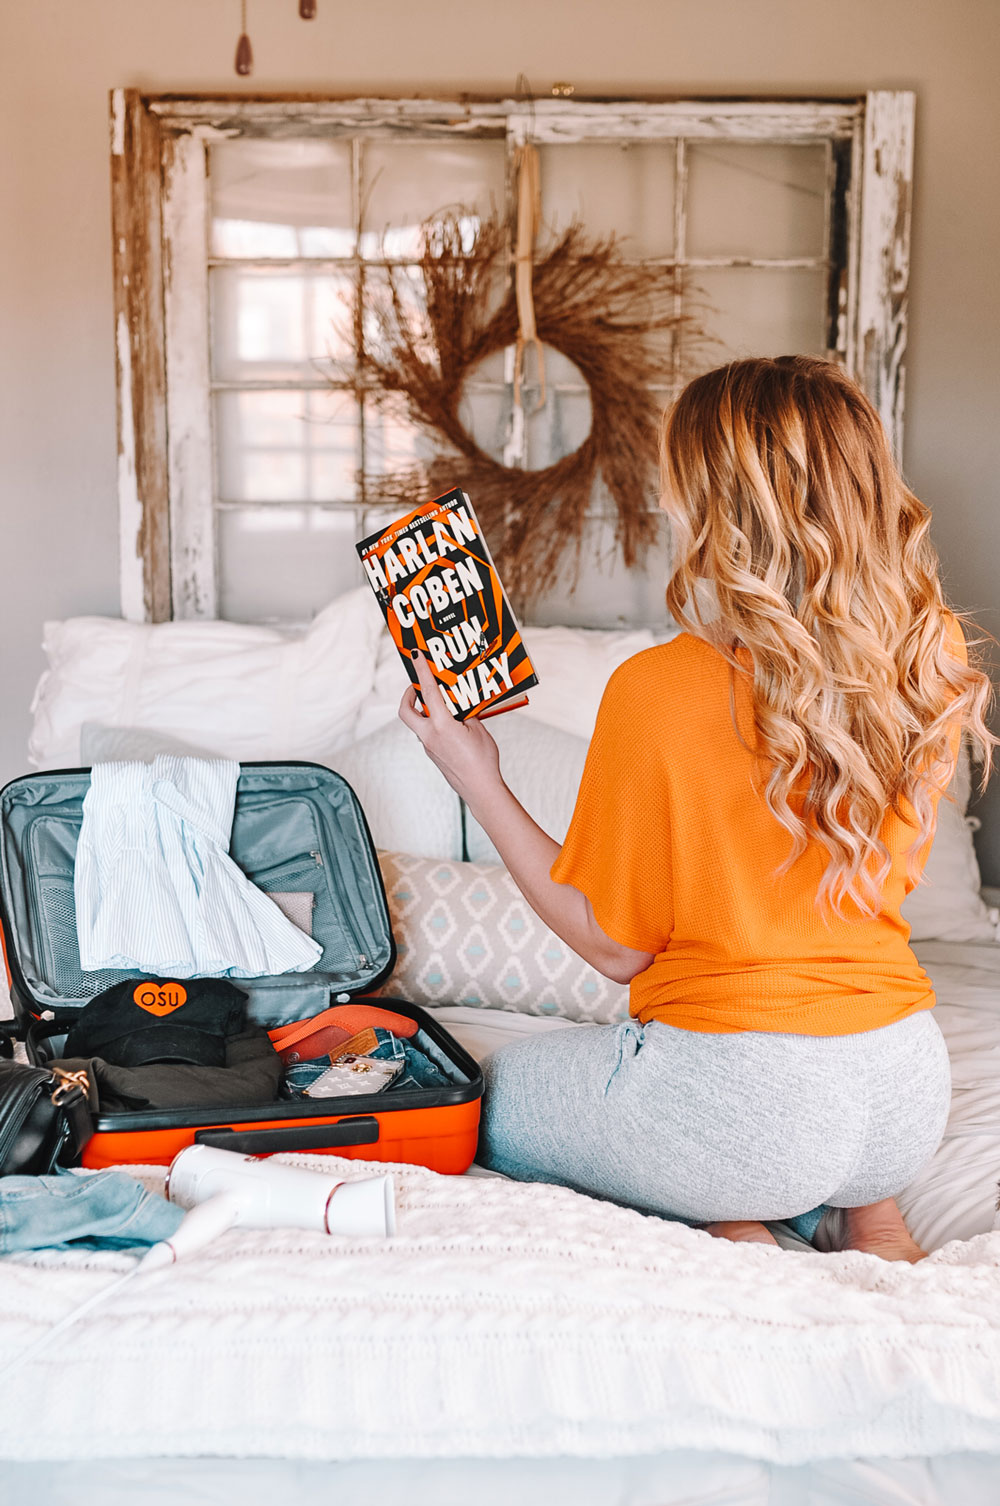 blogger Amanda Marti shares what to pack in a carryon for an overnight flight